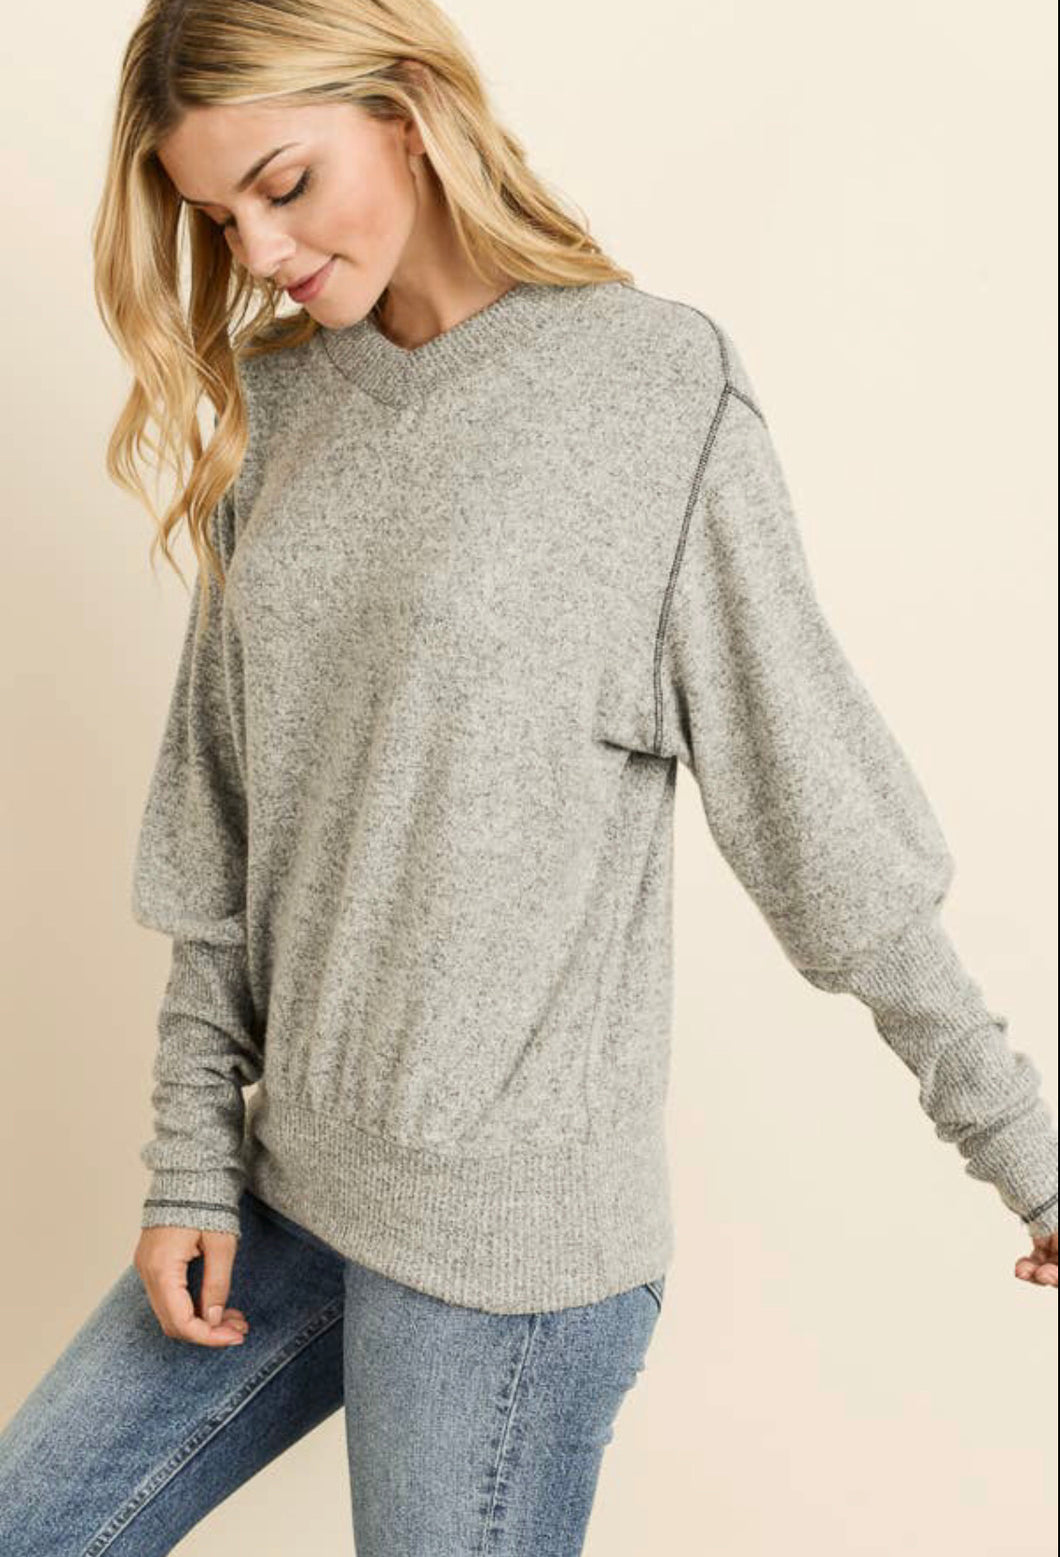 (Buy1 Get1) Heather Grey Sweater by Maple Sage